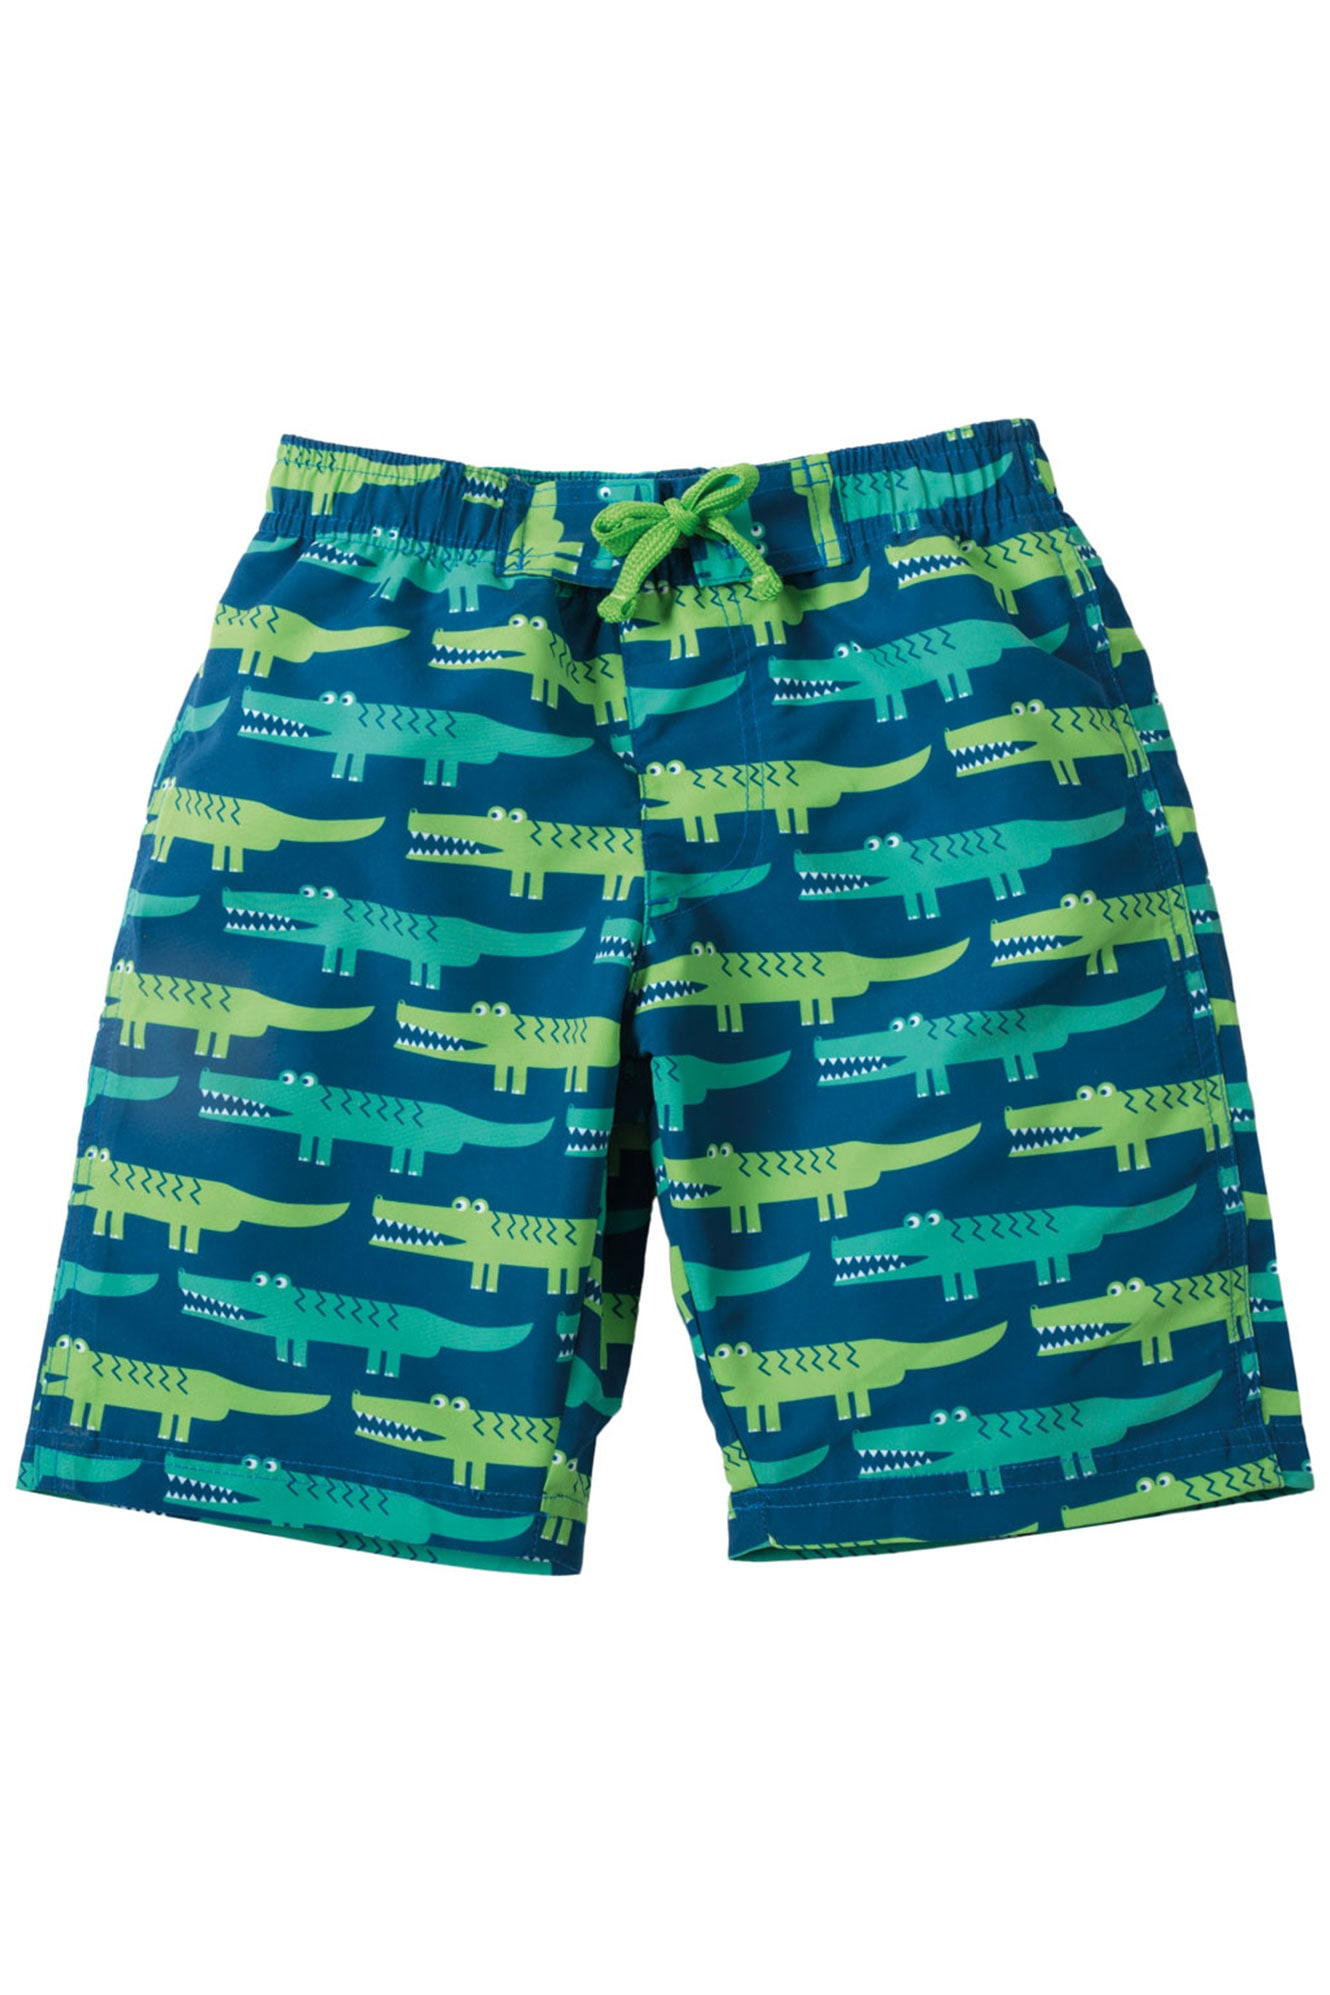 Stockists of Board Shorts